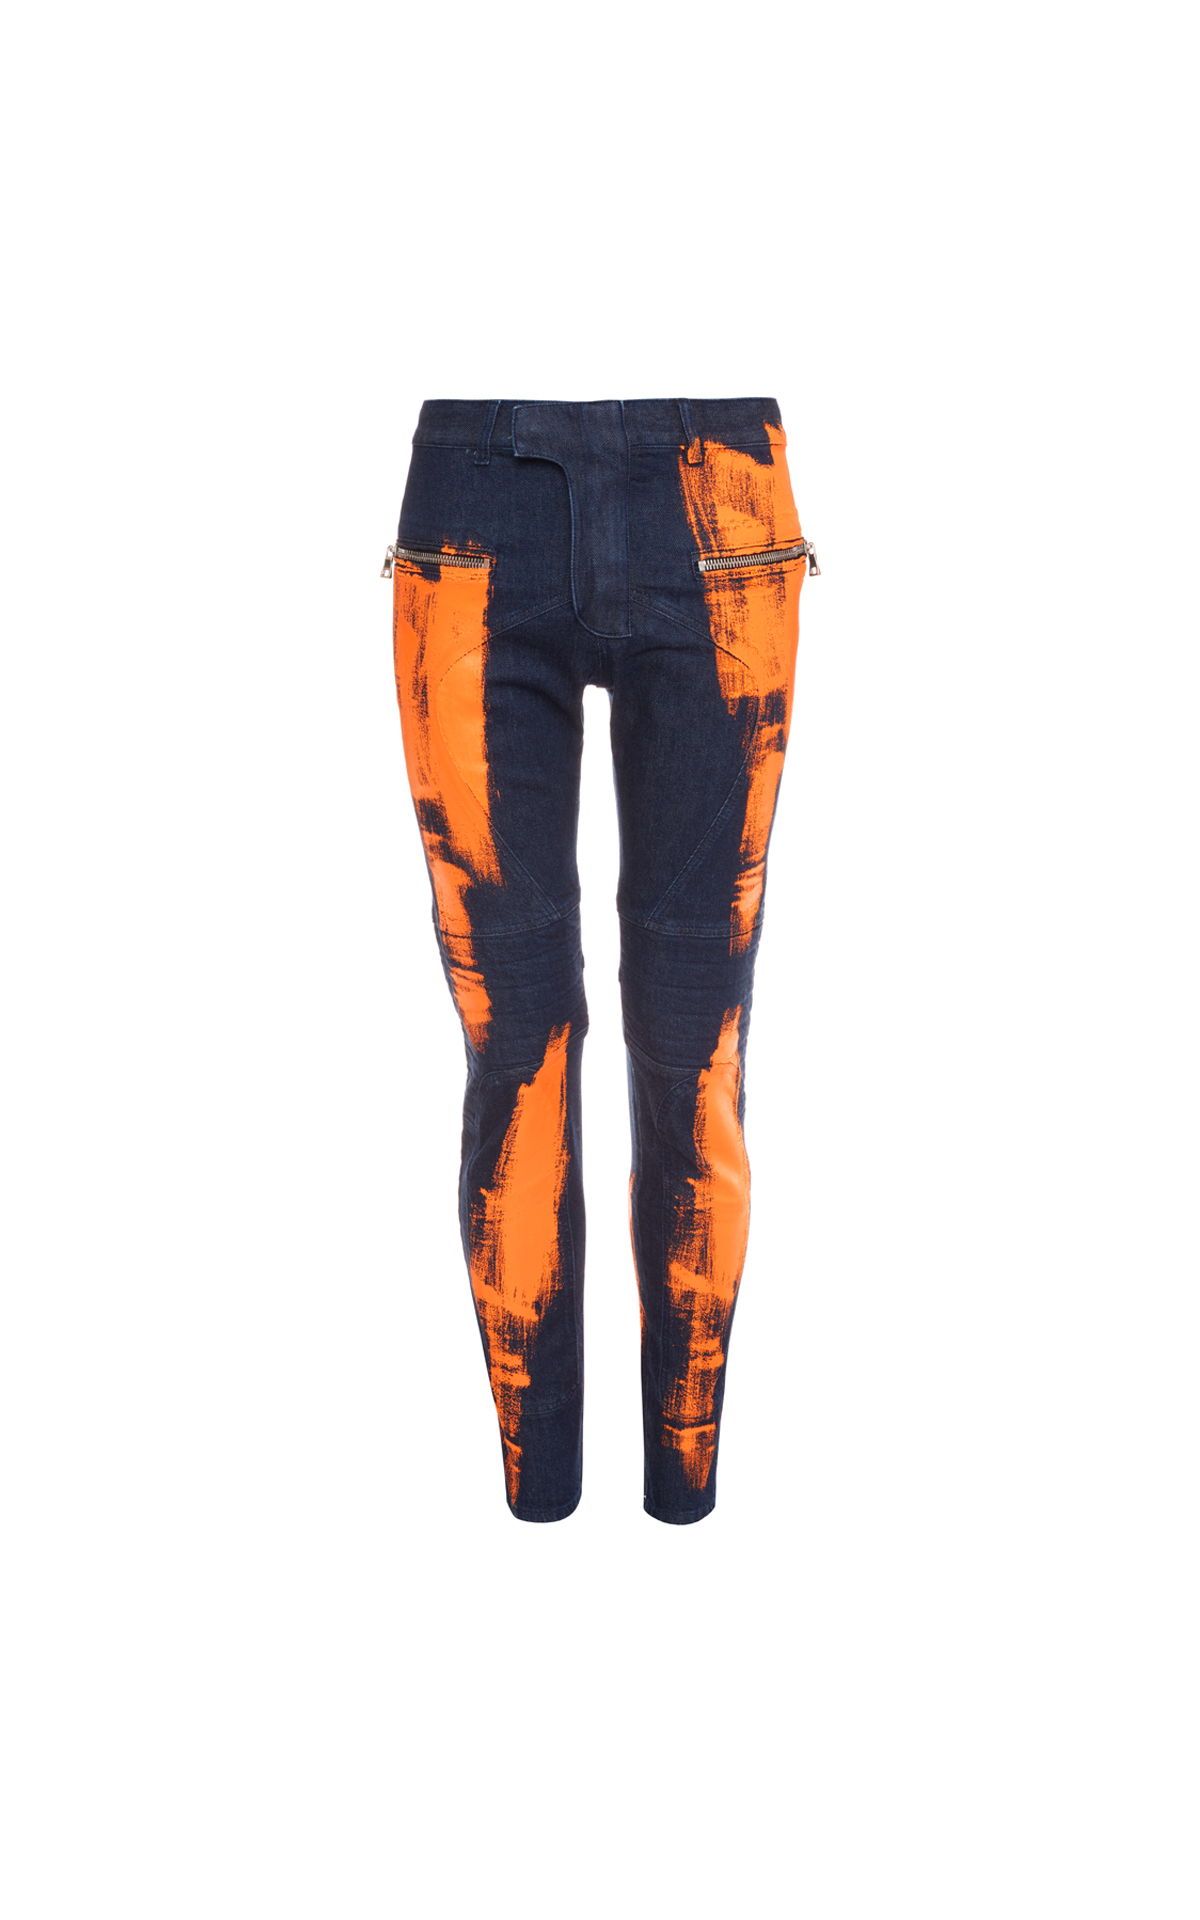 Balmain Men denim jeans orange from Bicester Village